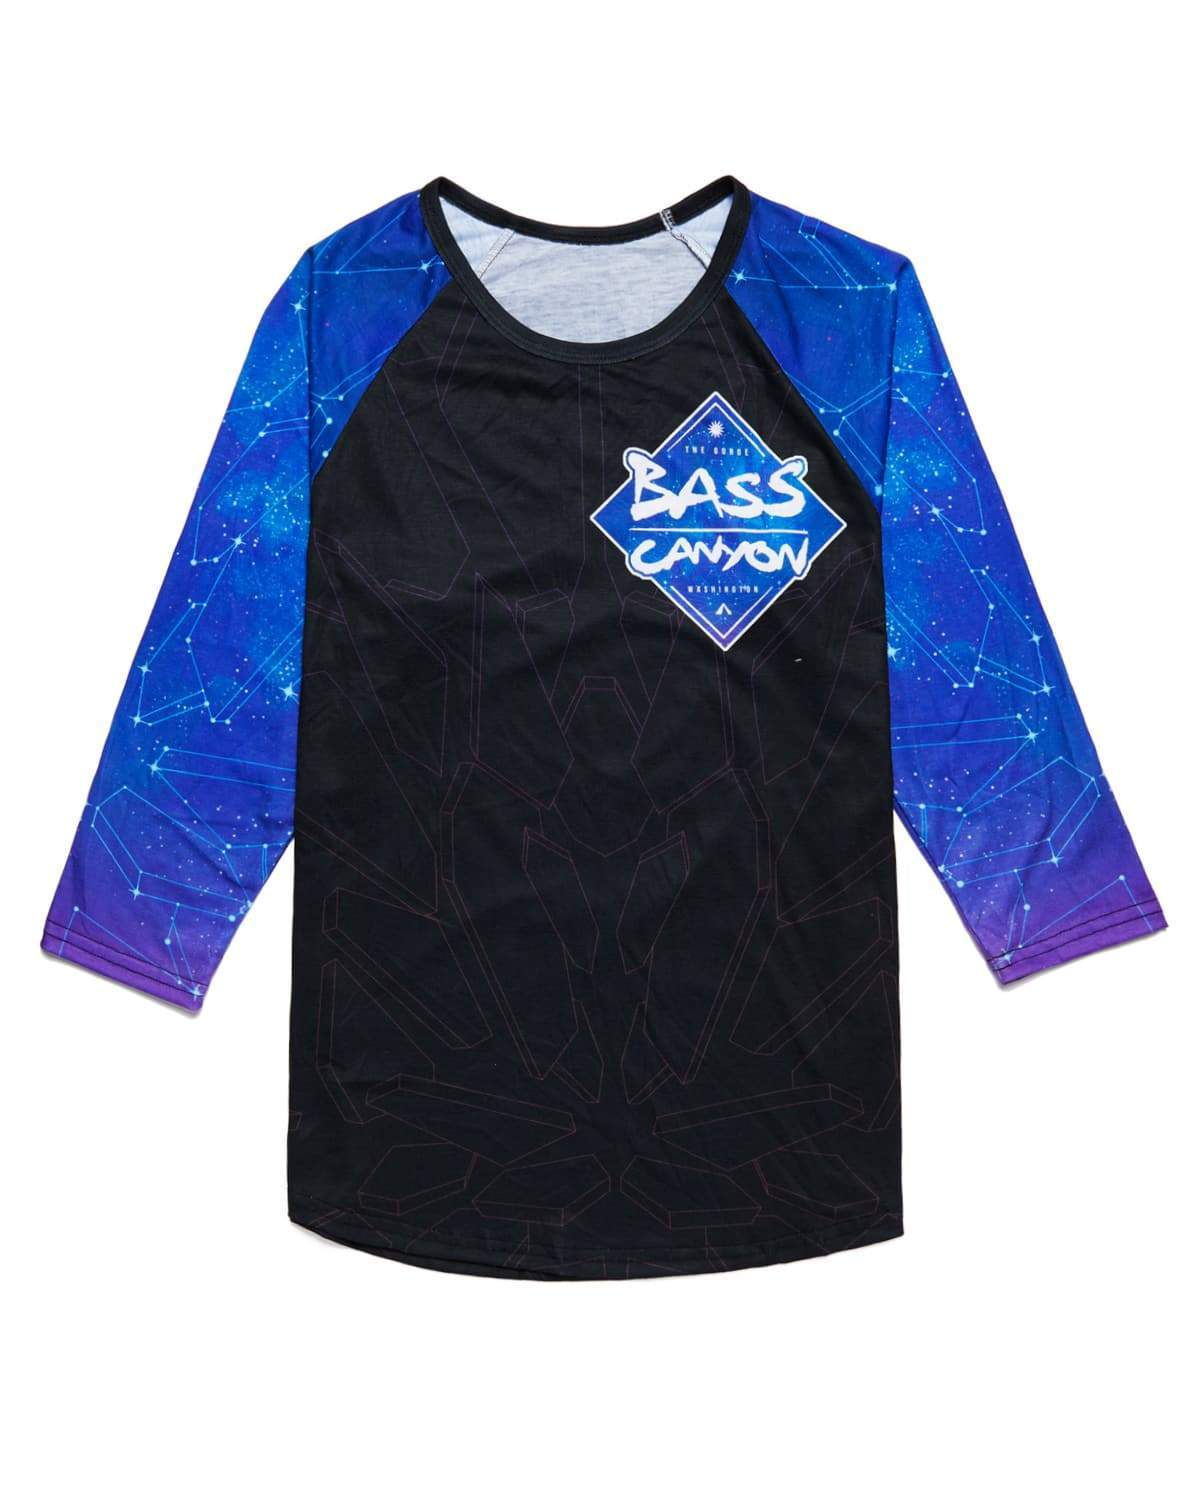 Bass Canyon 2018 Baseball Tee - Purple/Black